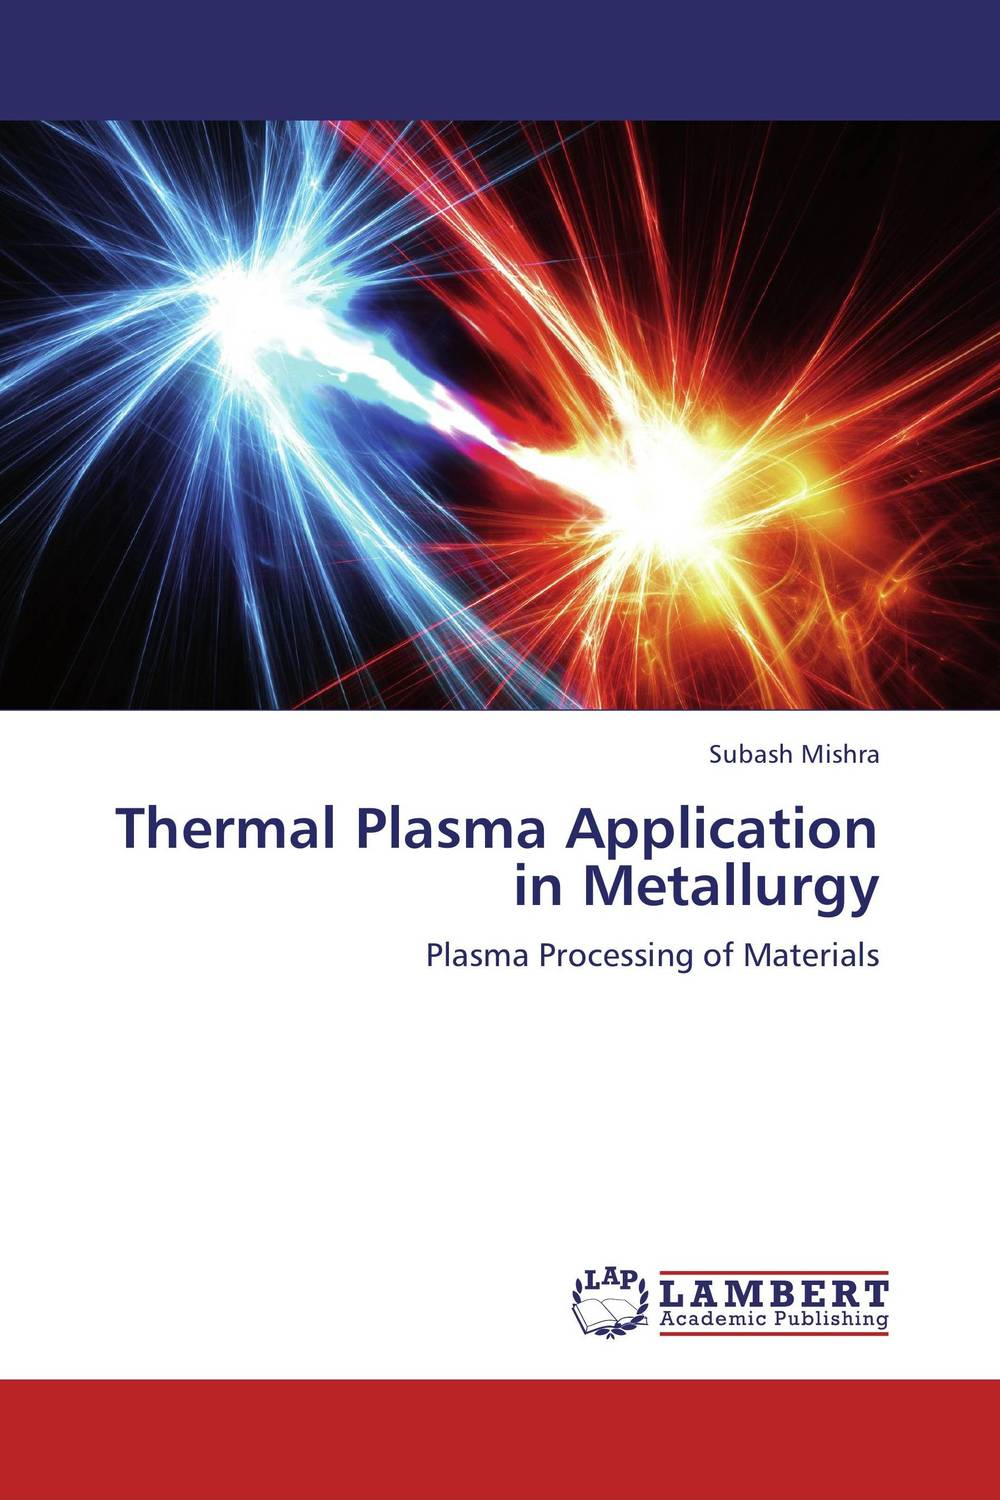 Thermal Plasma Application in Metallurgy modern physical metallurgy and materials engineering